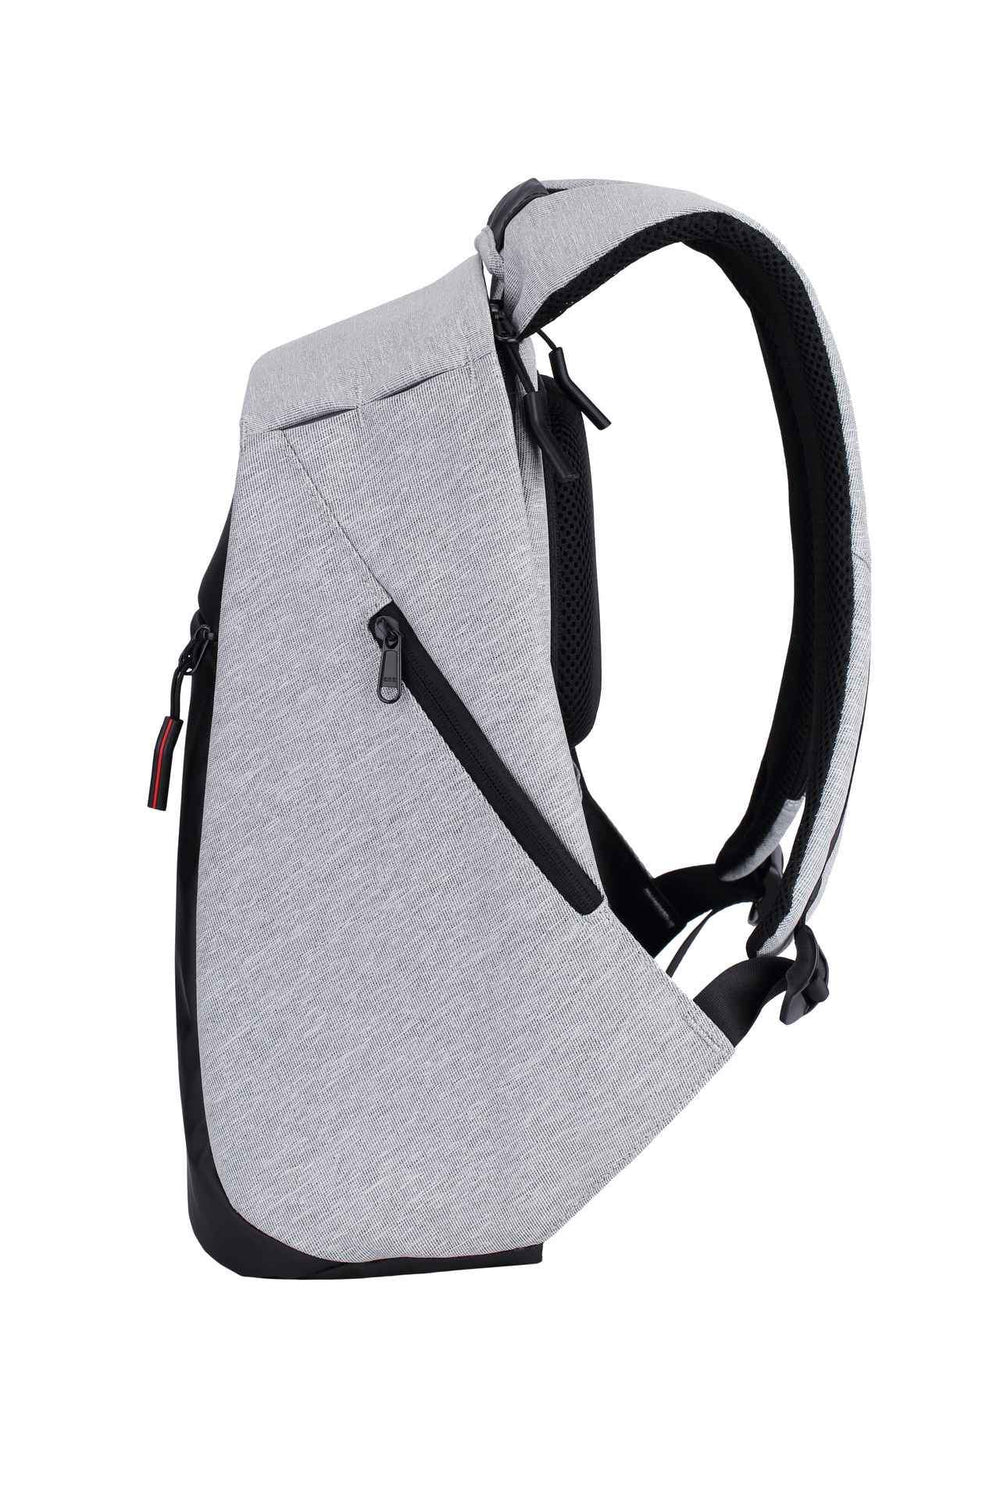 RUIGOR LINK 40 Laptop Backpack Black-Grey